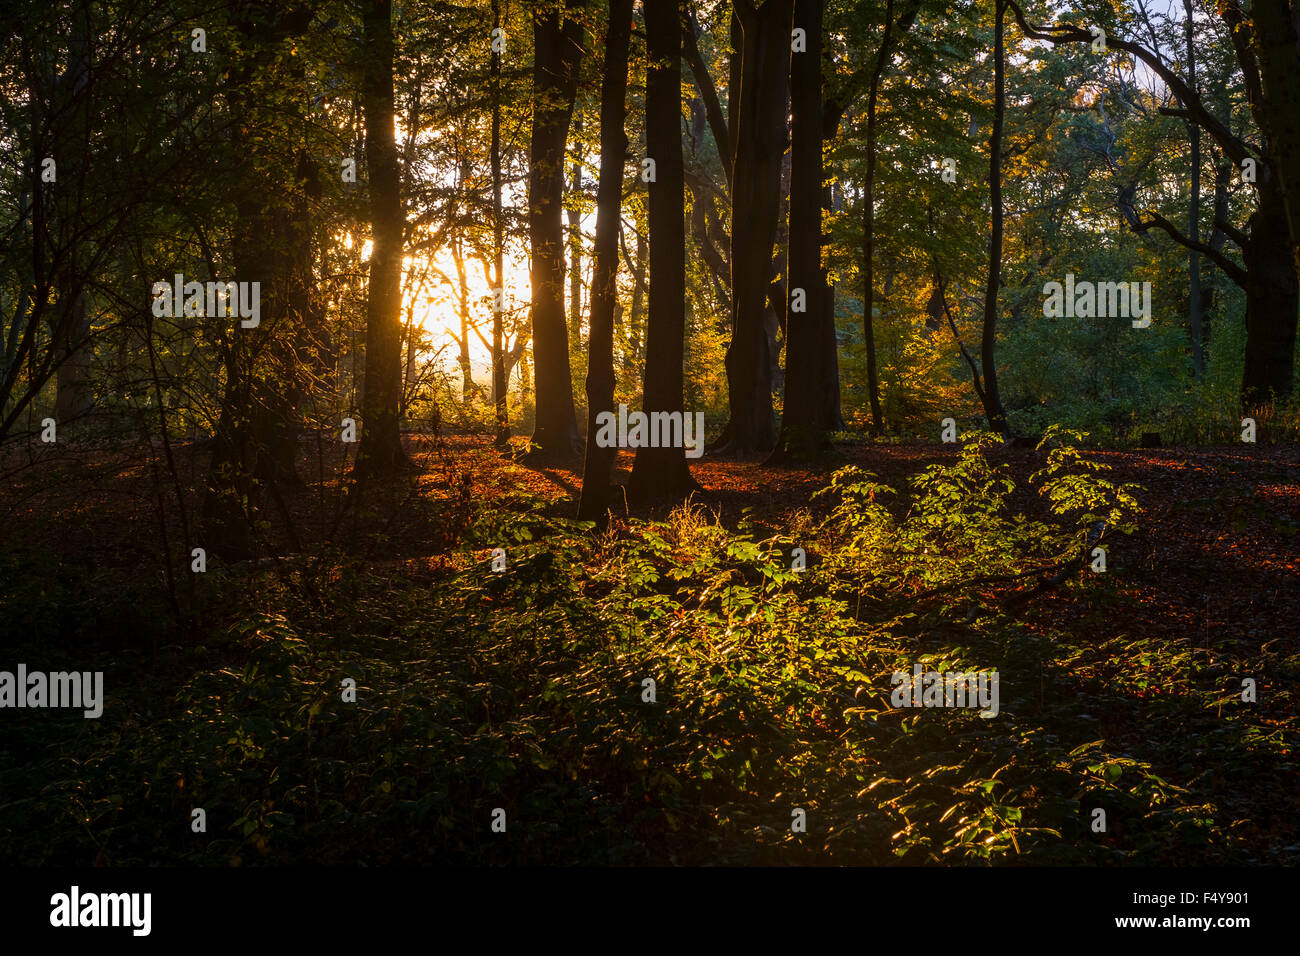 A Golden Sunset on English Woodland in Hanbury, Worcestershire. - Stock Image